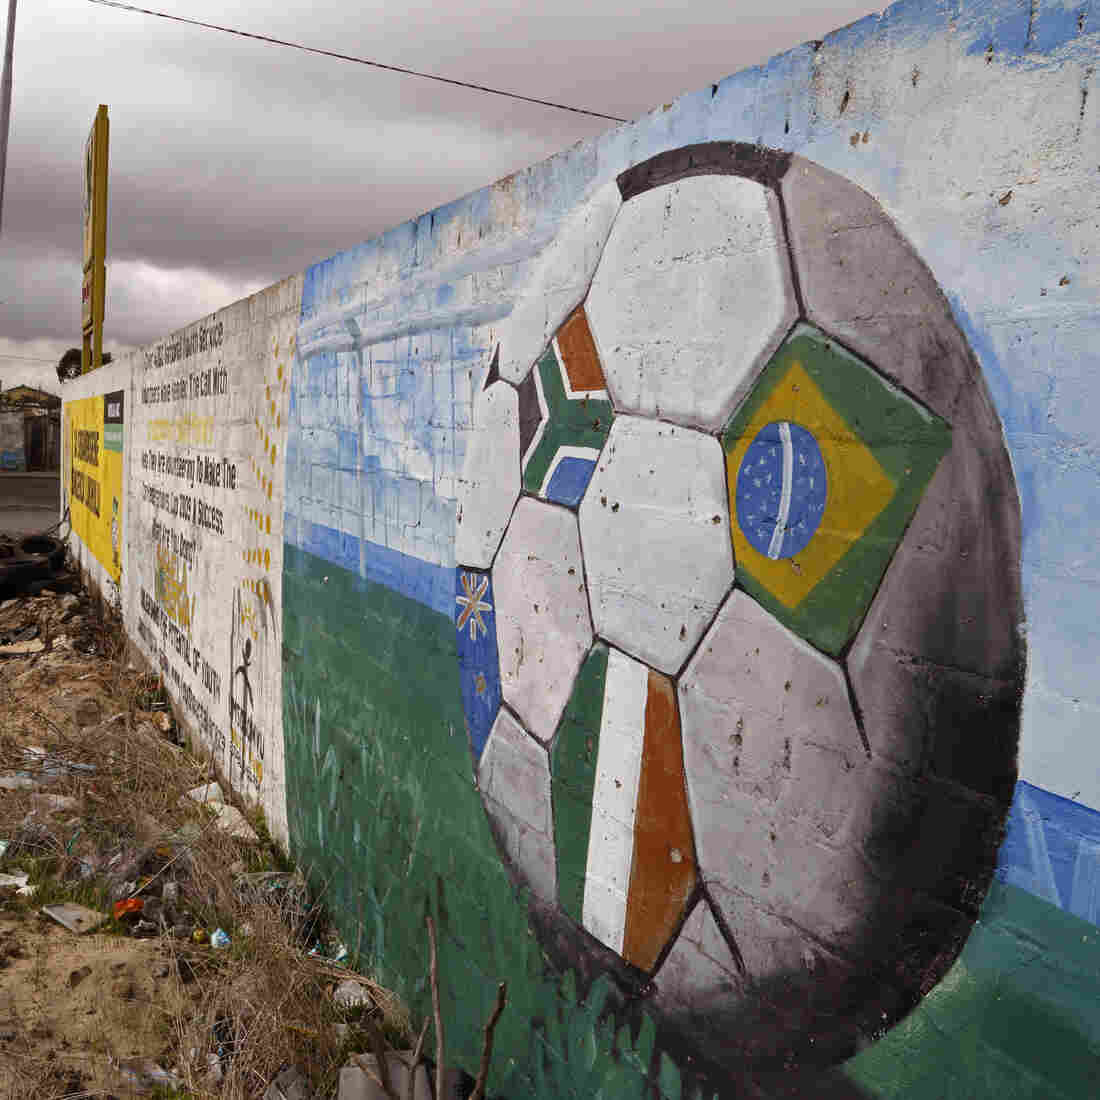 A soccer ball covered with flags is painted on a wall in the township of Khayelitsha, South Africa. The image of South Africa's 2010 World Cup has been shattered by allegations that its bid over a decade ago was boosted by bribes of more than $10 million to secure FIFA votes — allegations FIFA addressed in Wednesday's request for restitution.